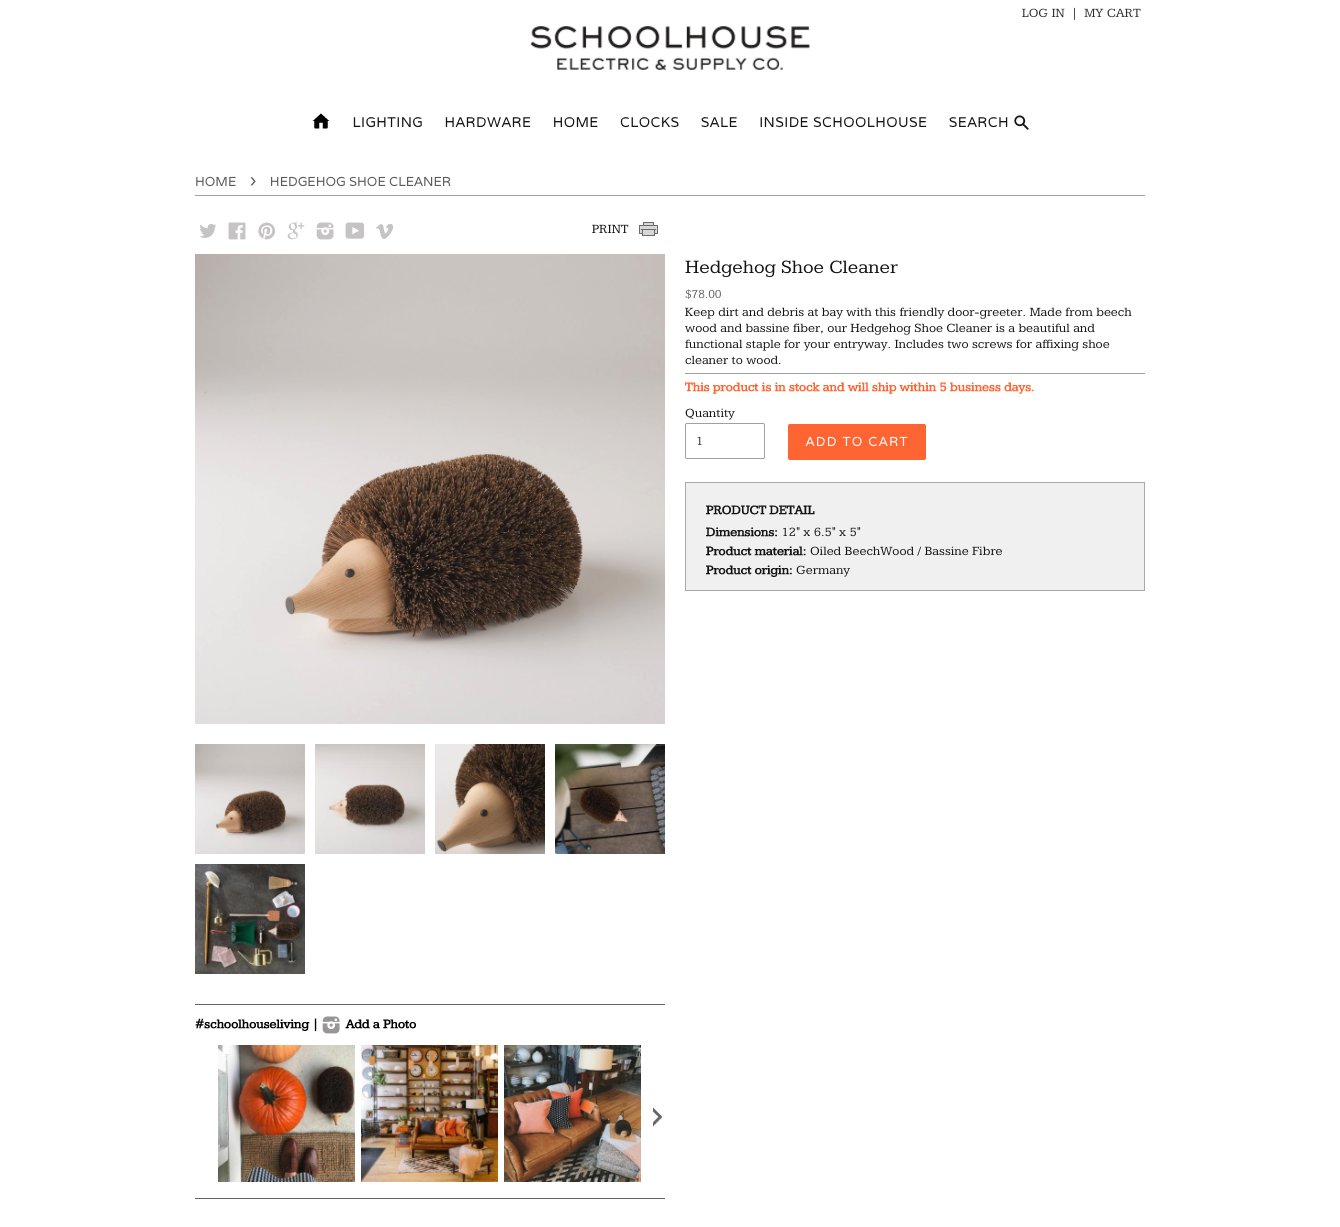 screencapture-schoolhouse-products-hedgehog-shoe-cleaner-2018-03-22-15_51_05 (1).png